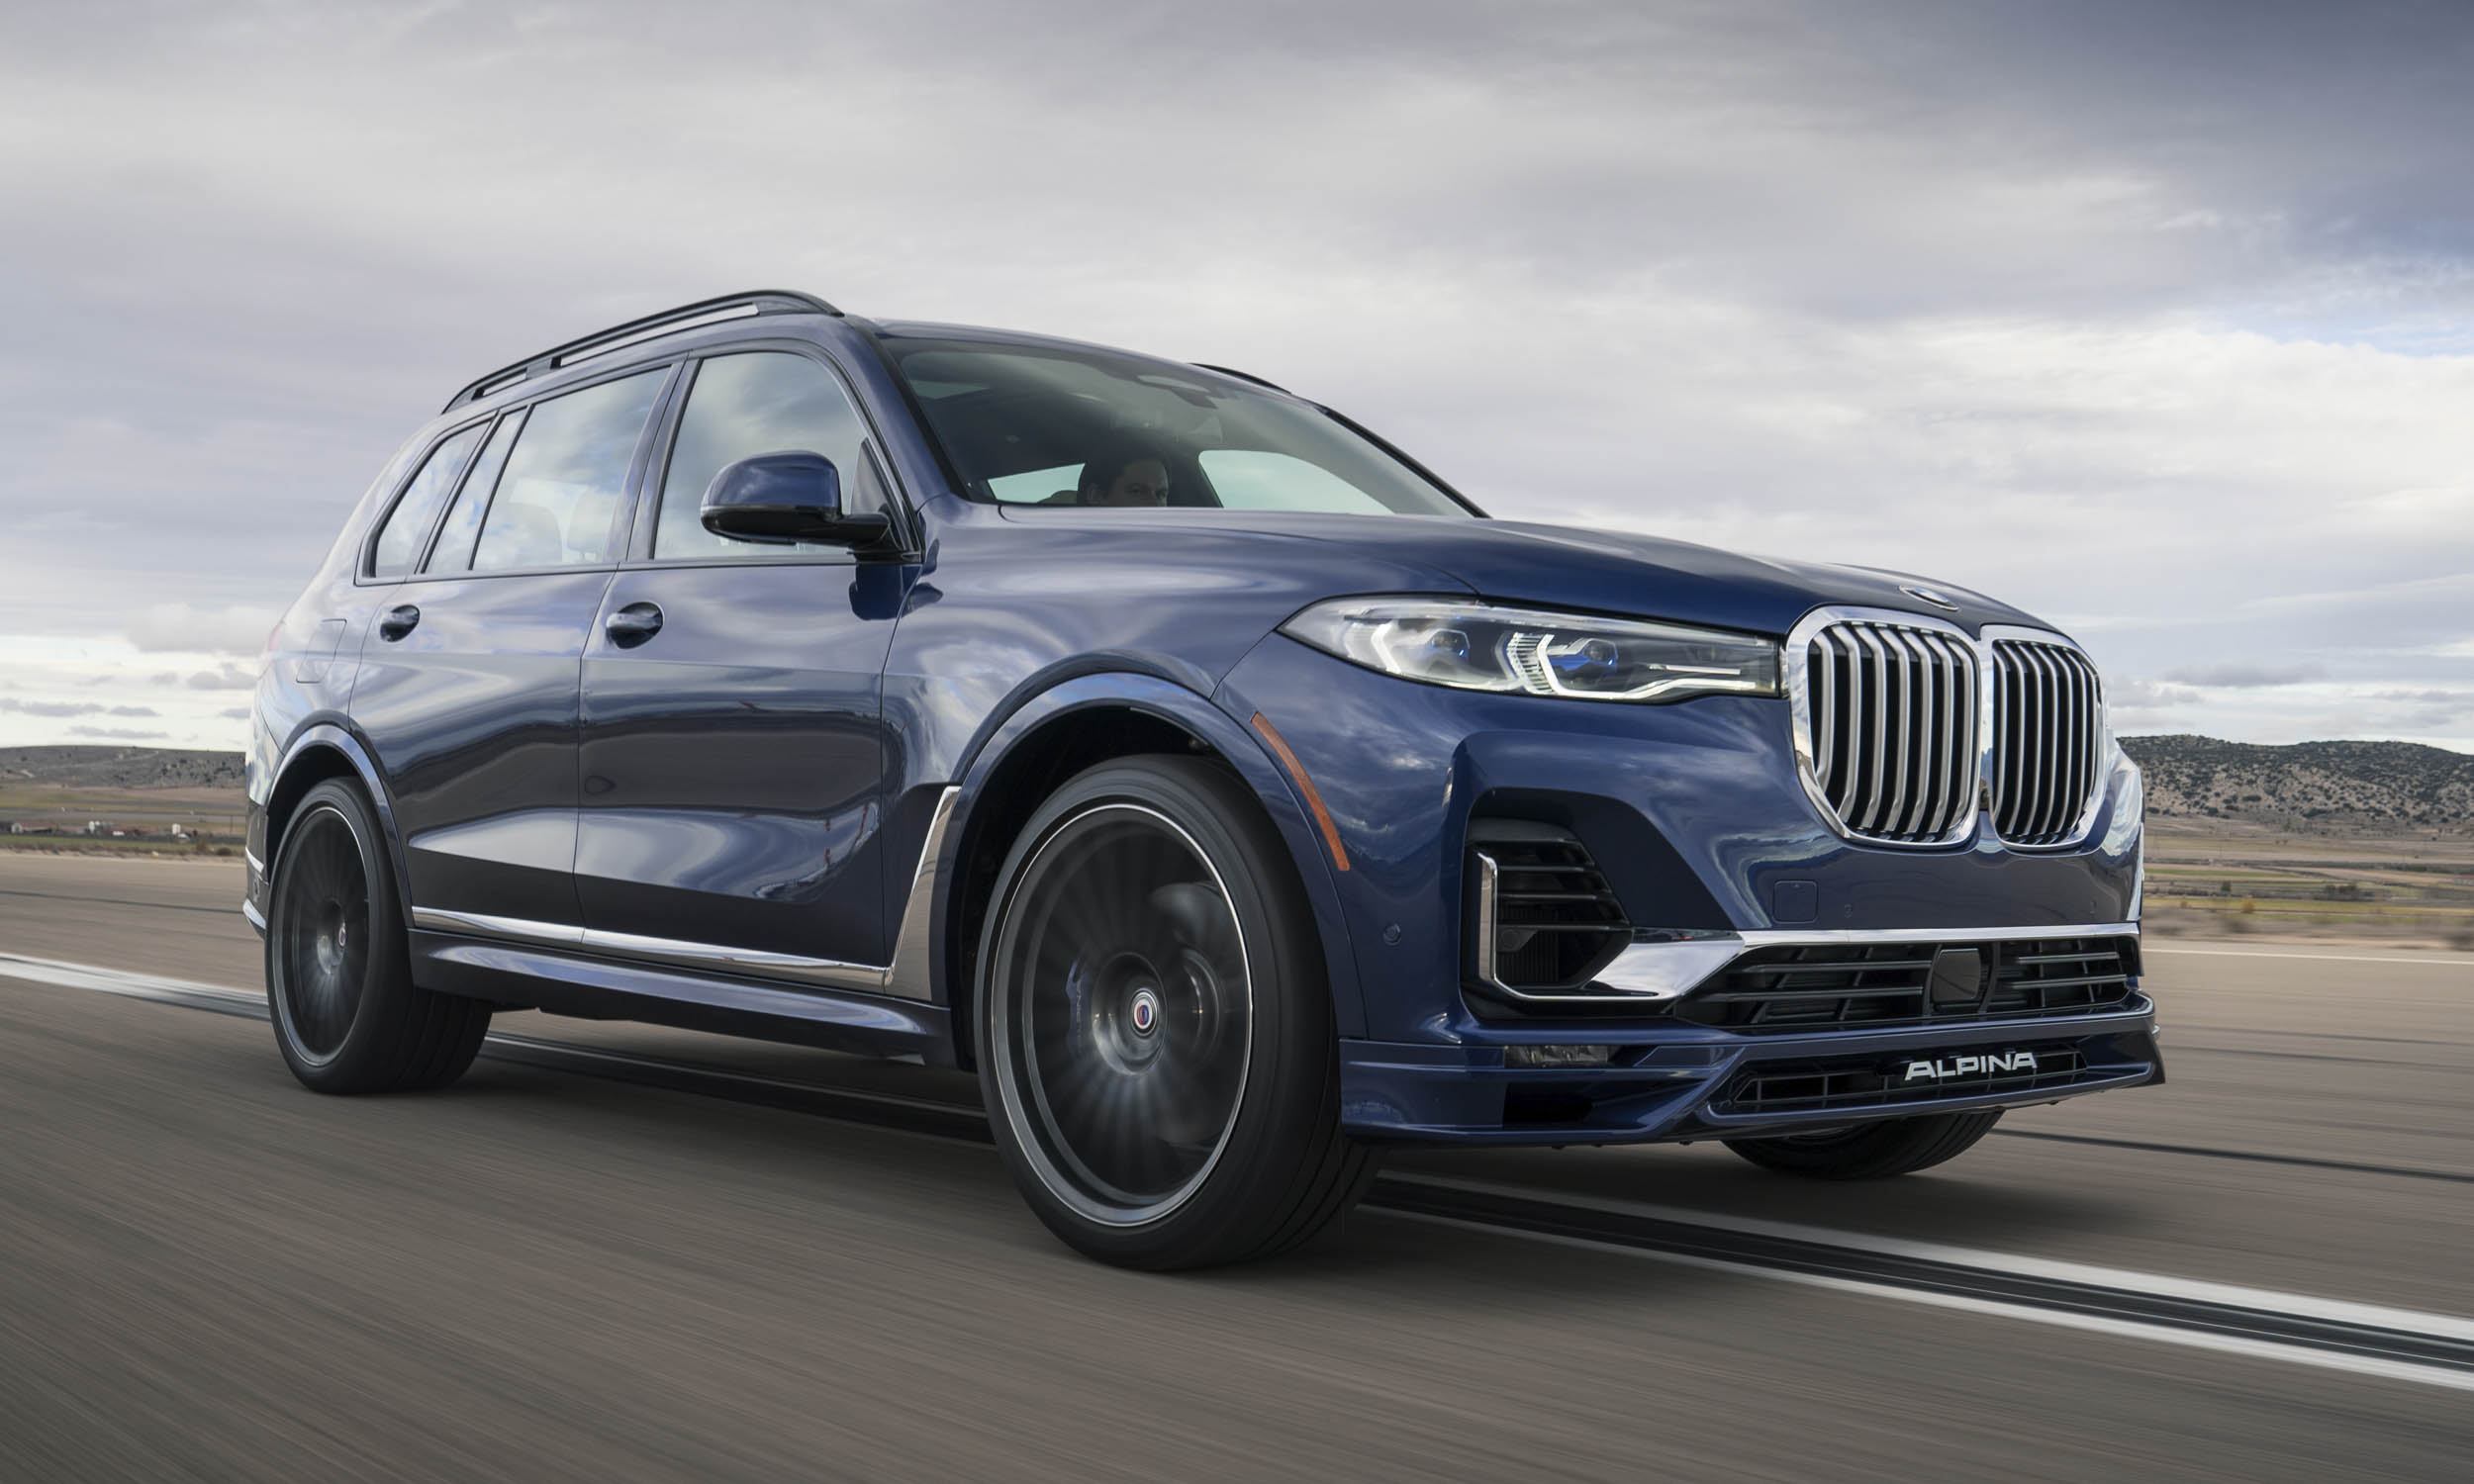 2021 Bmw Alpina Xb7 First Look Our Auto Expert